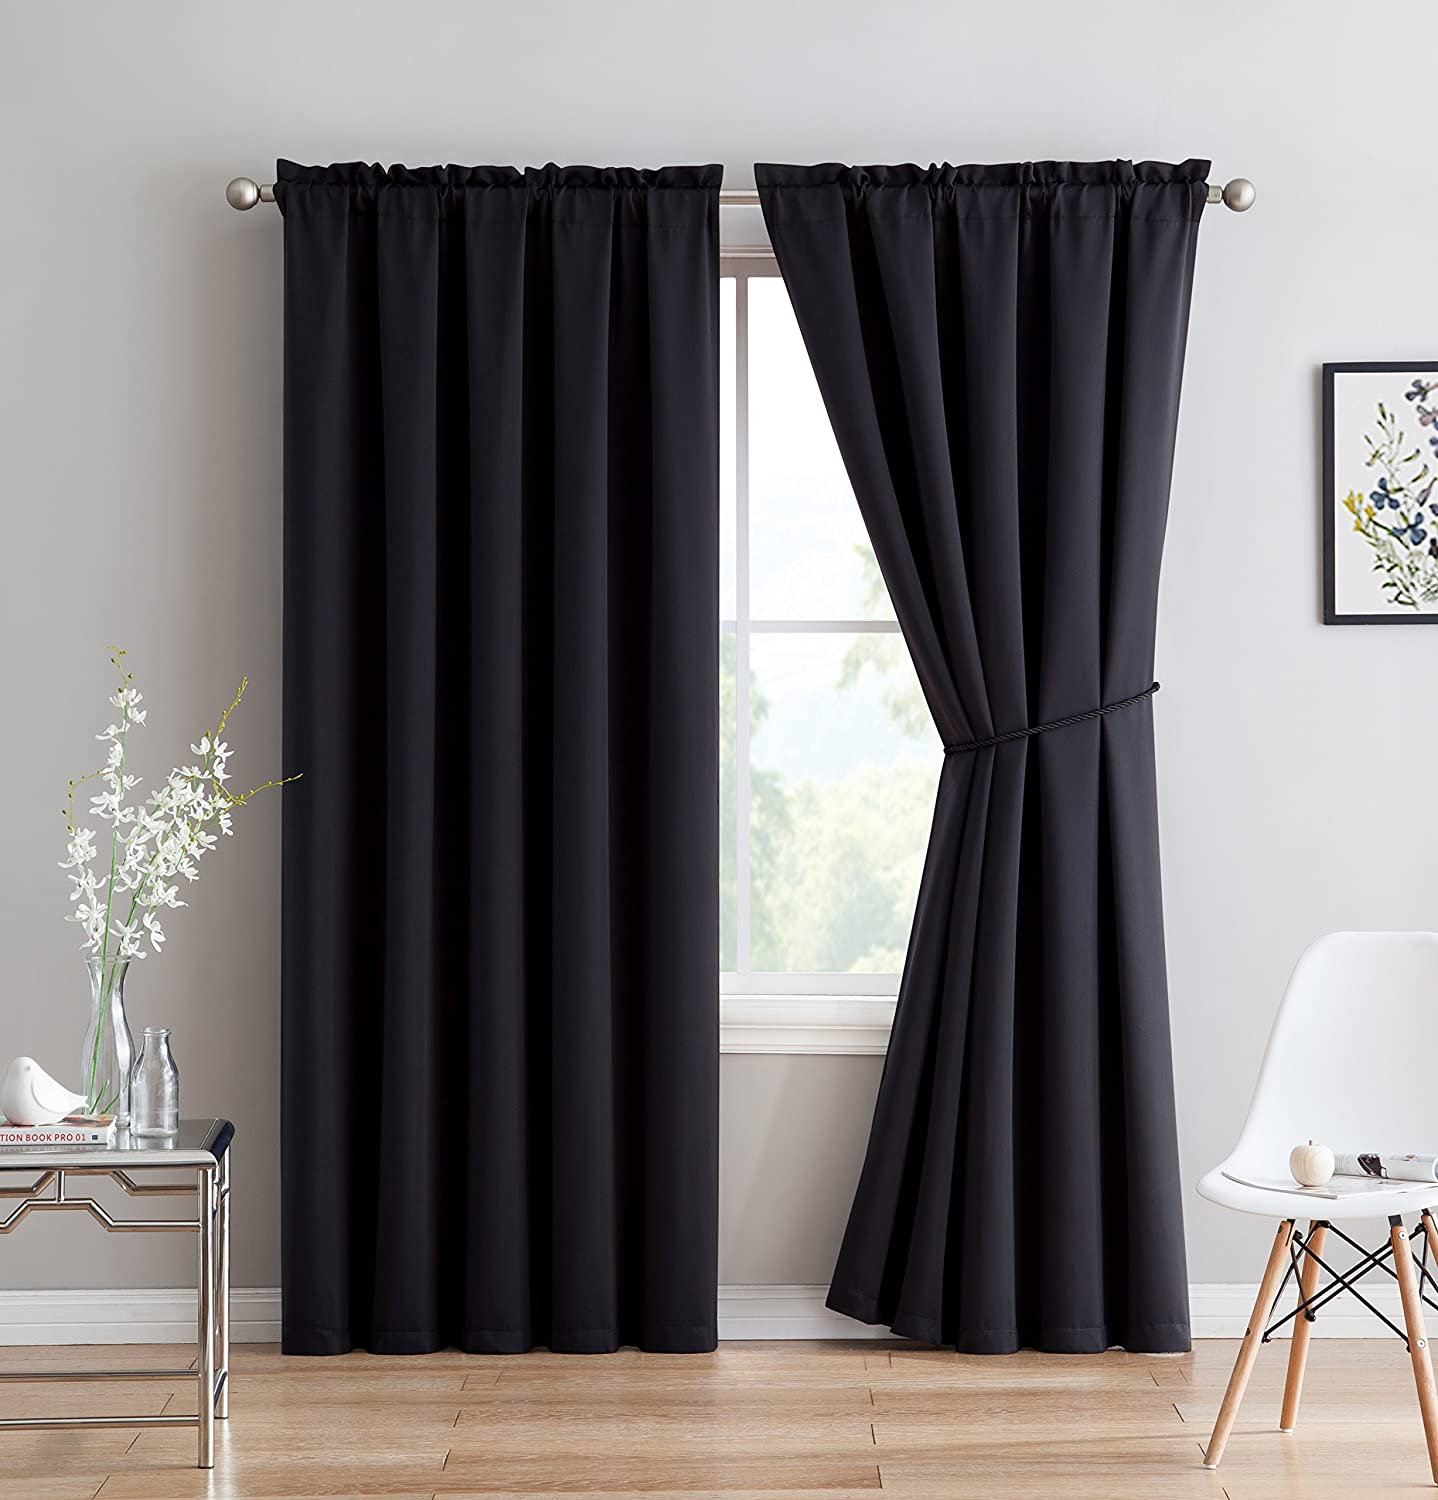 Erica - Premium Rod Pocket Blackout Curtains With Tiebacks - 2 Panels Black